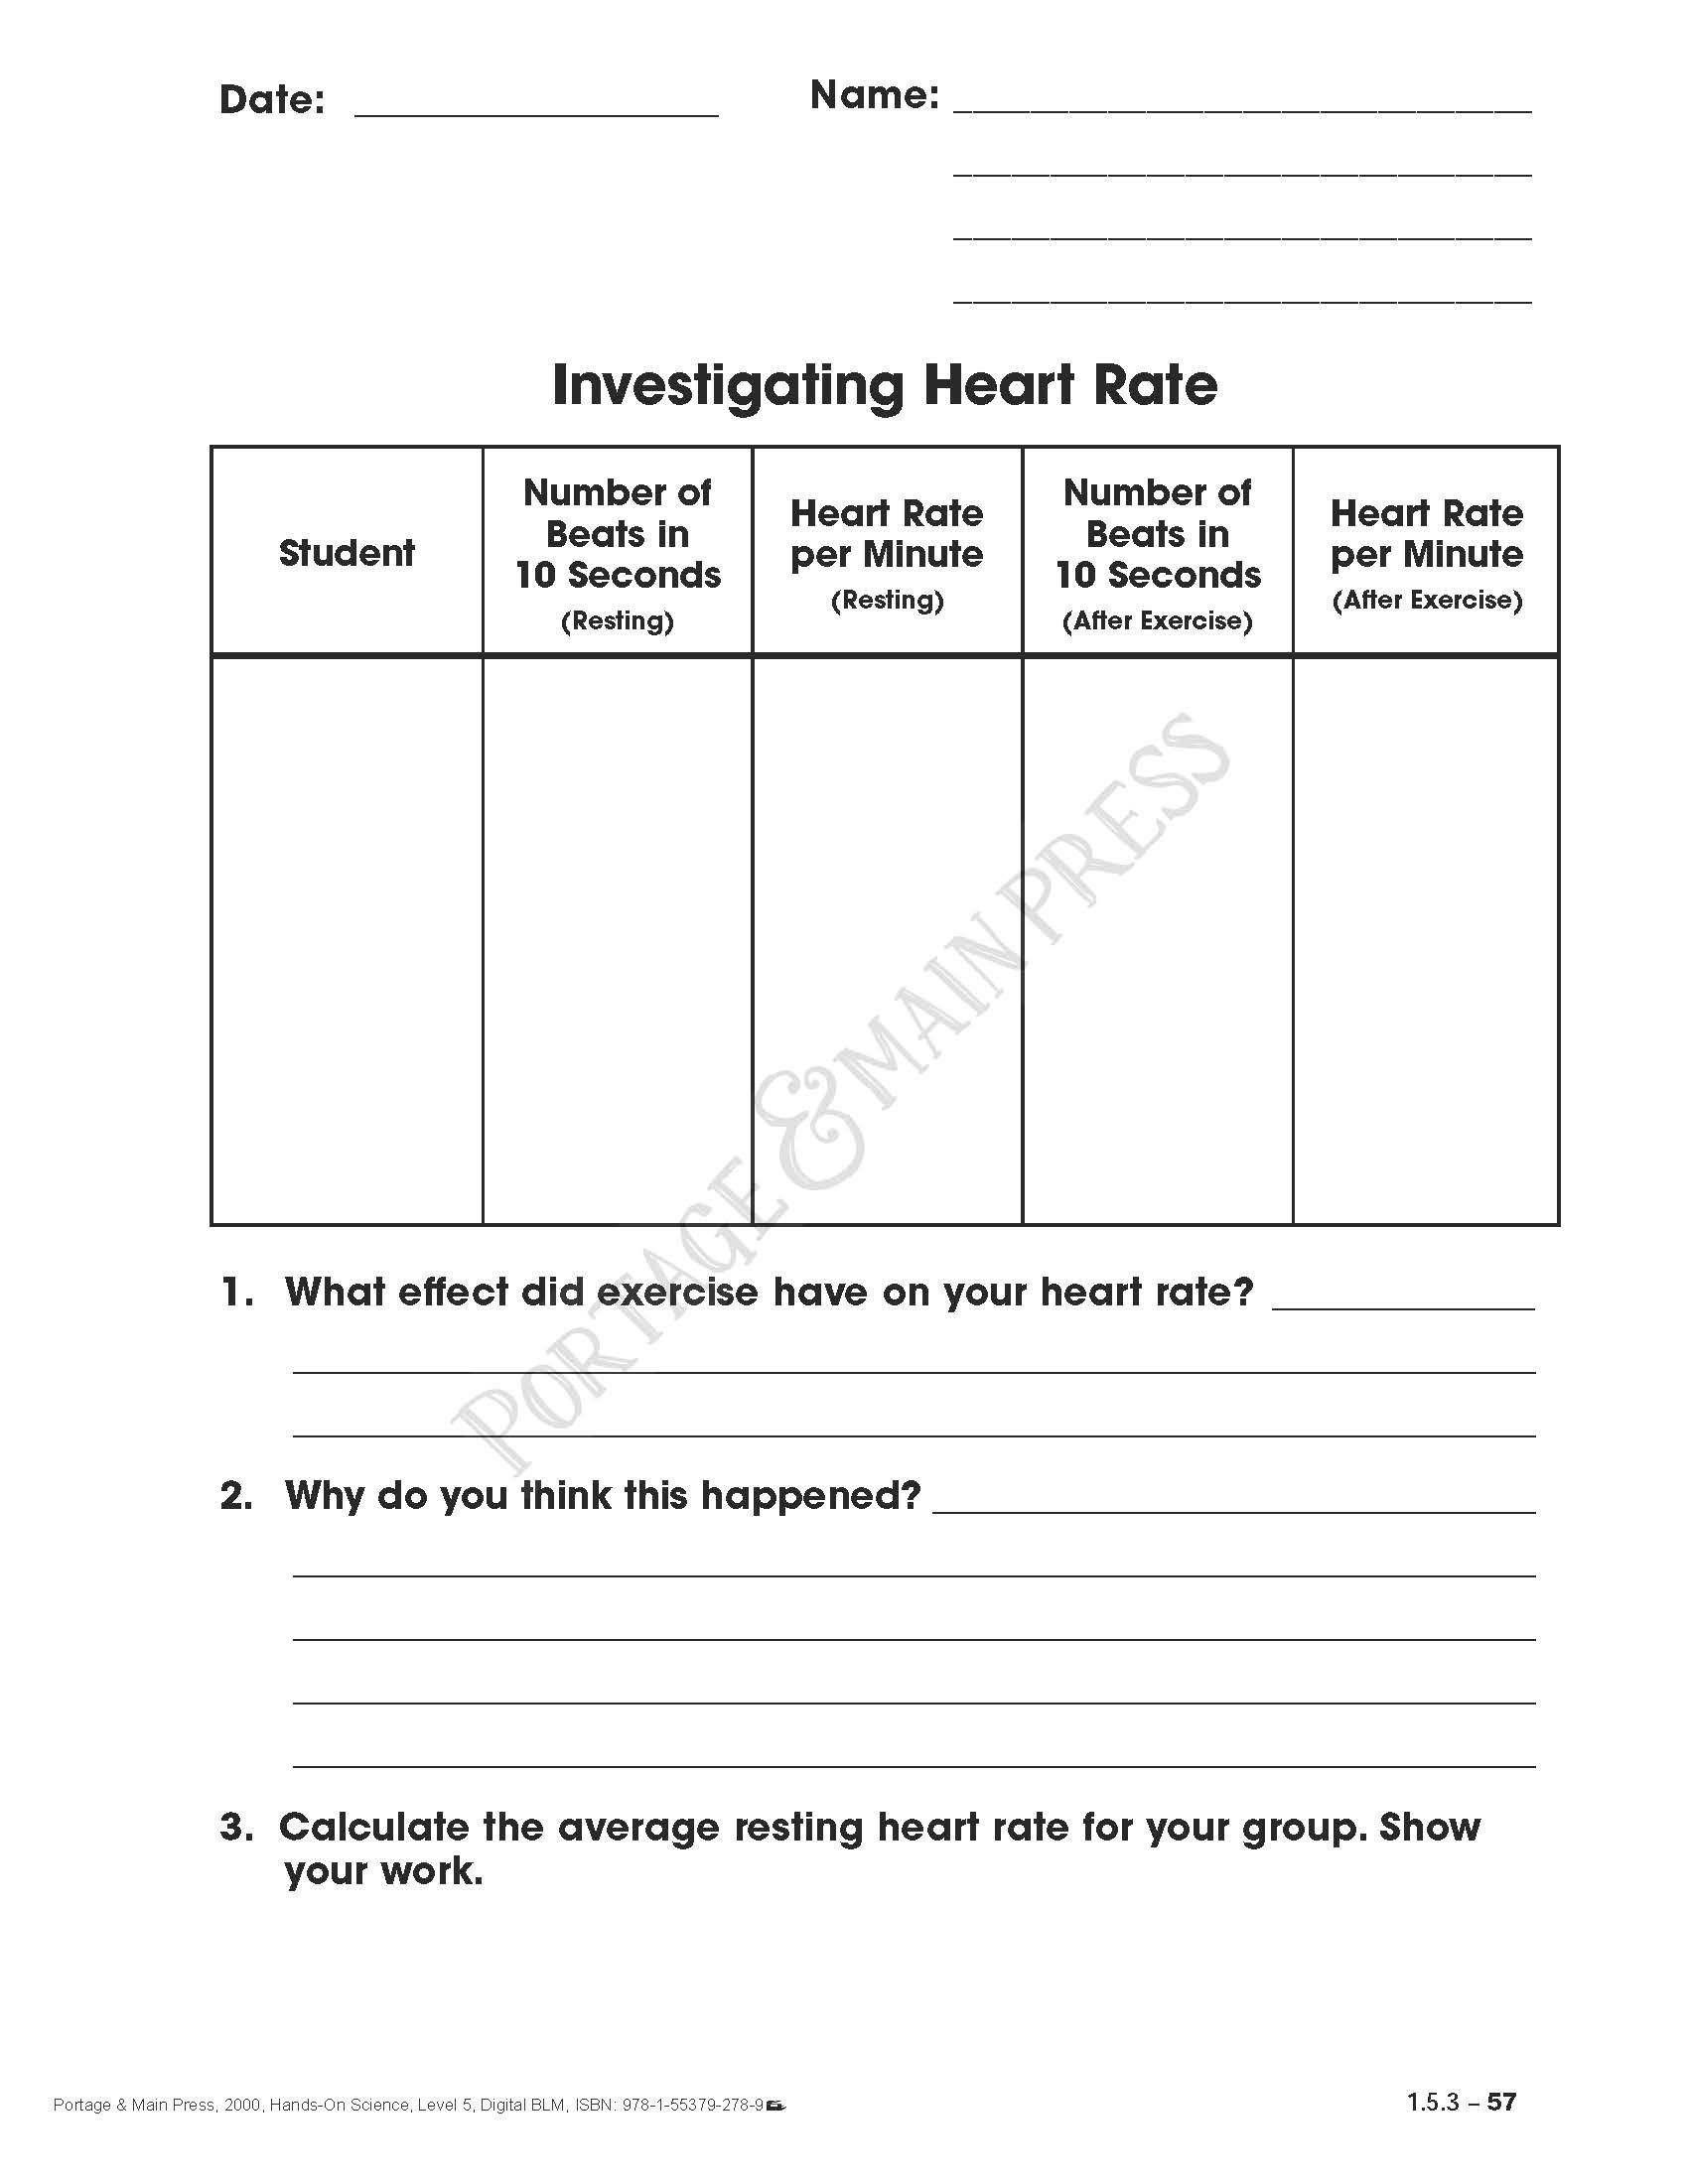 Health Worksheets for 5th Grade Grade 5 Science Heart Rate Activity Sheet    Health education [ 2200 x 1700 Pixel ]